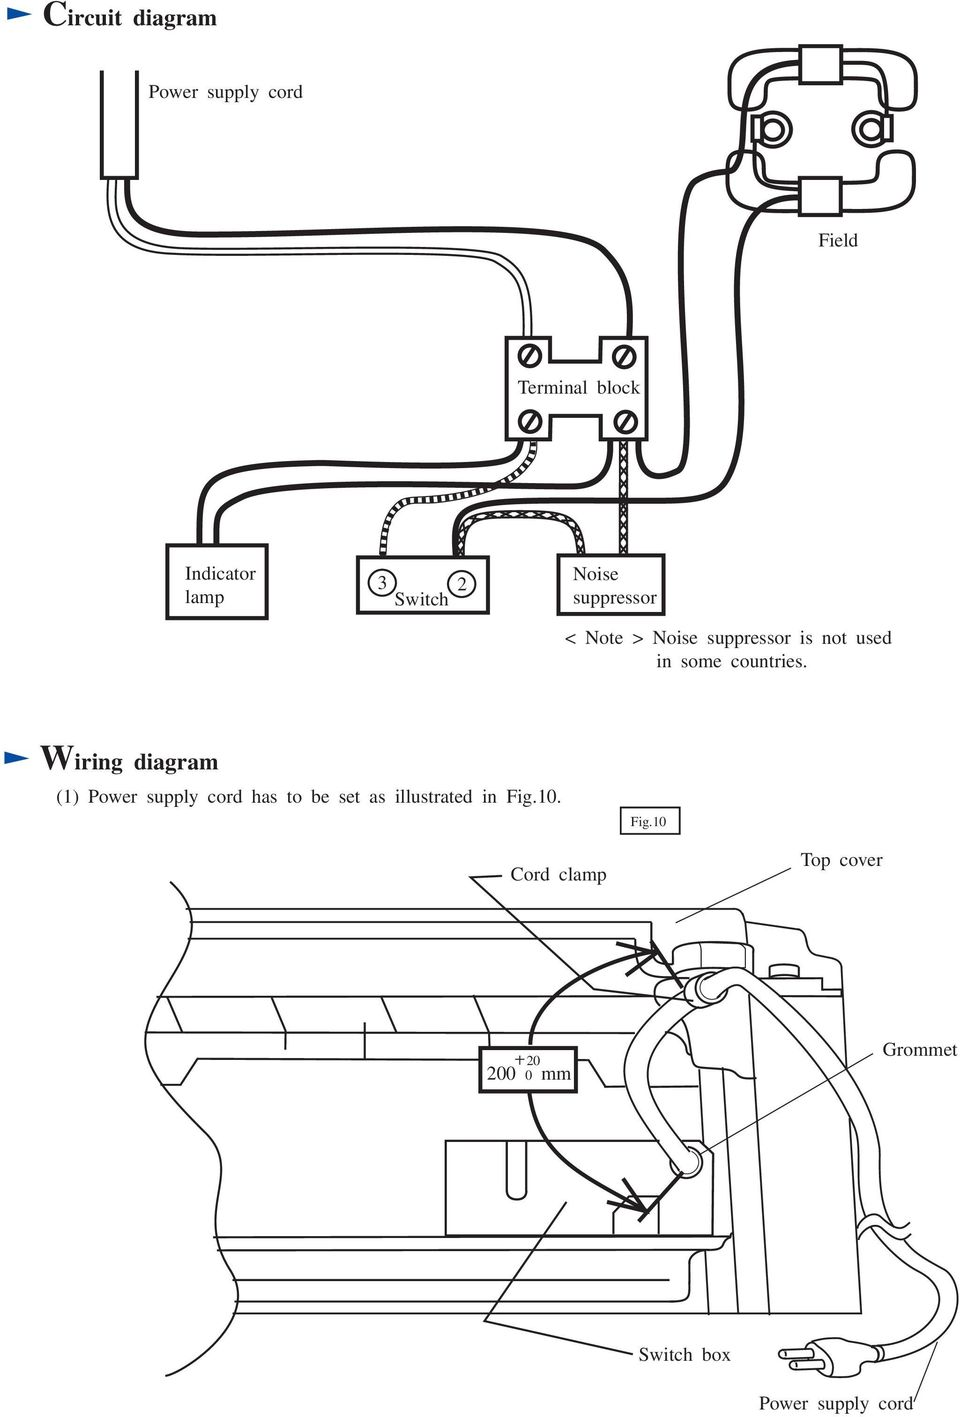 gretsch 5120 wiring diagram gretsch wiring diagrams gretsch g5120 electromatic wiring diagram np246 transfer ca wiring